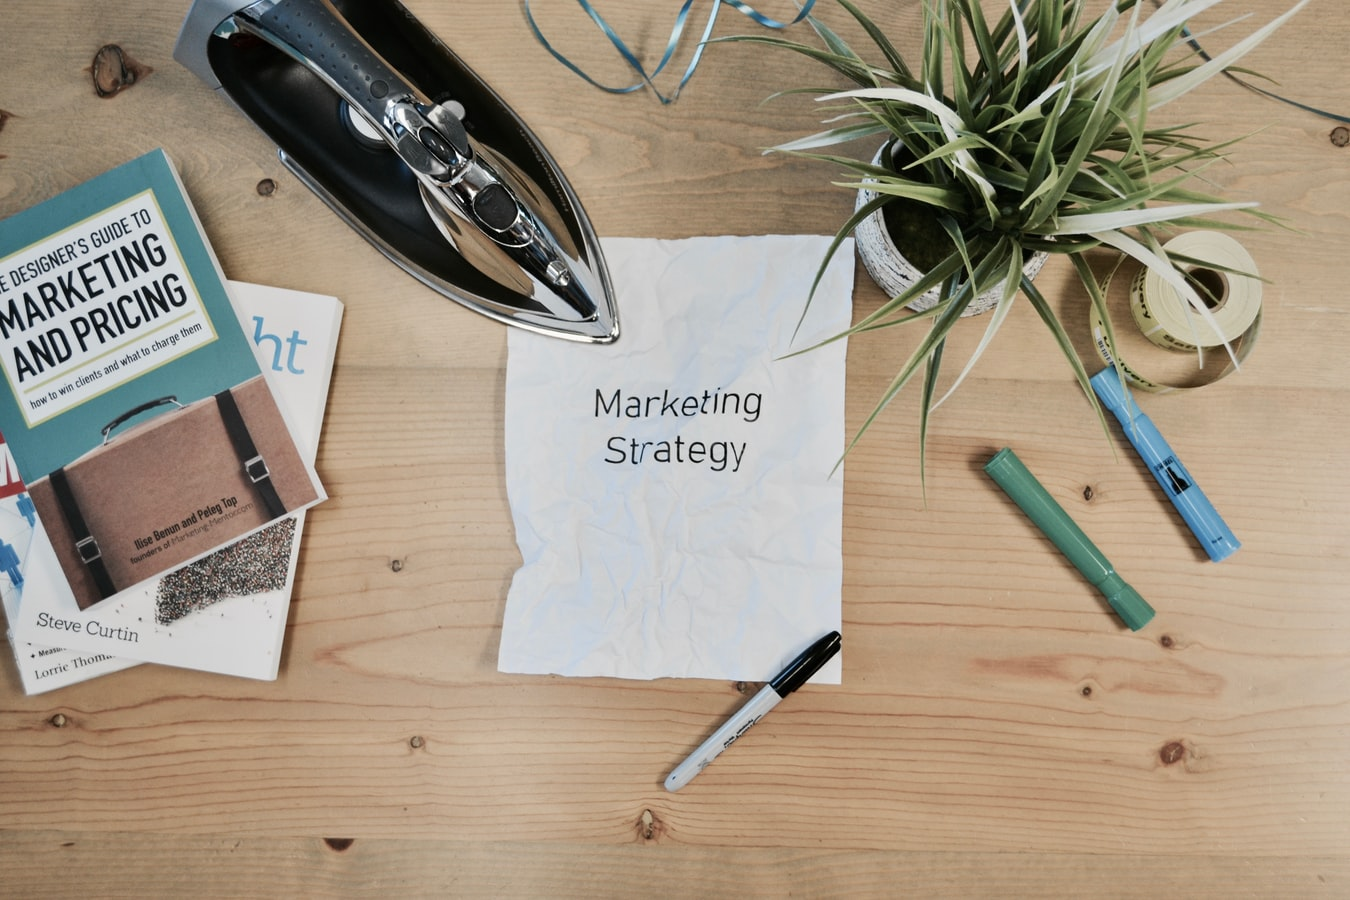 Top 7 Tips For Marketing Your Business On A Budget